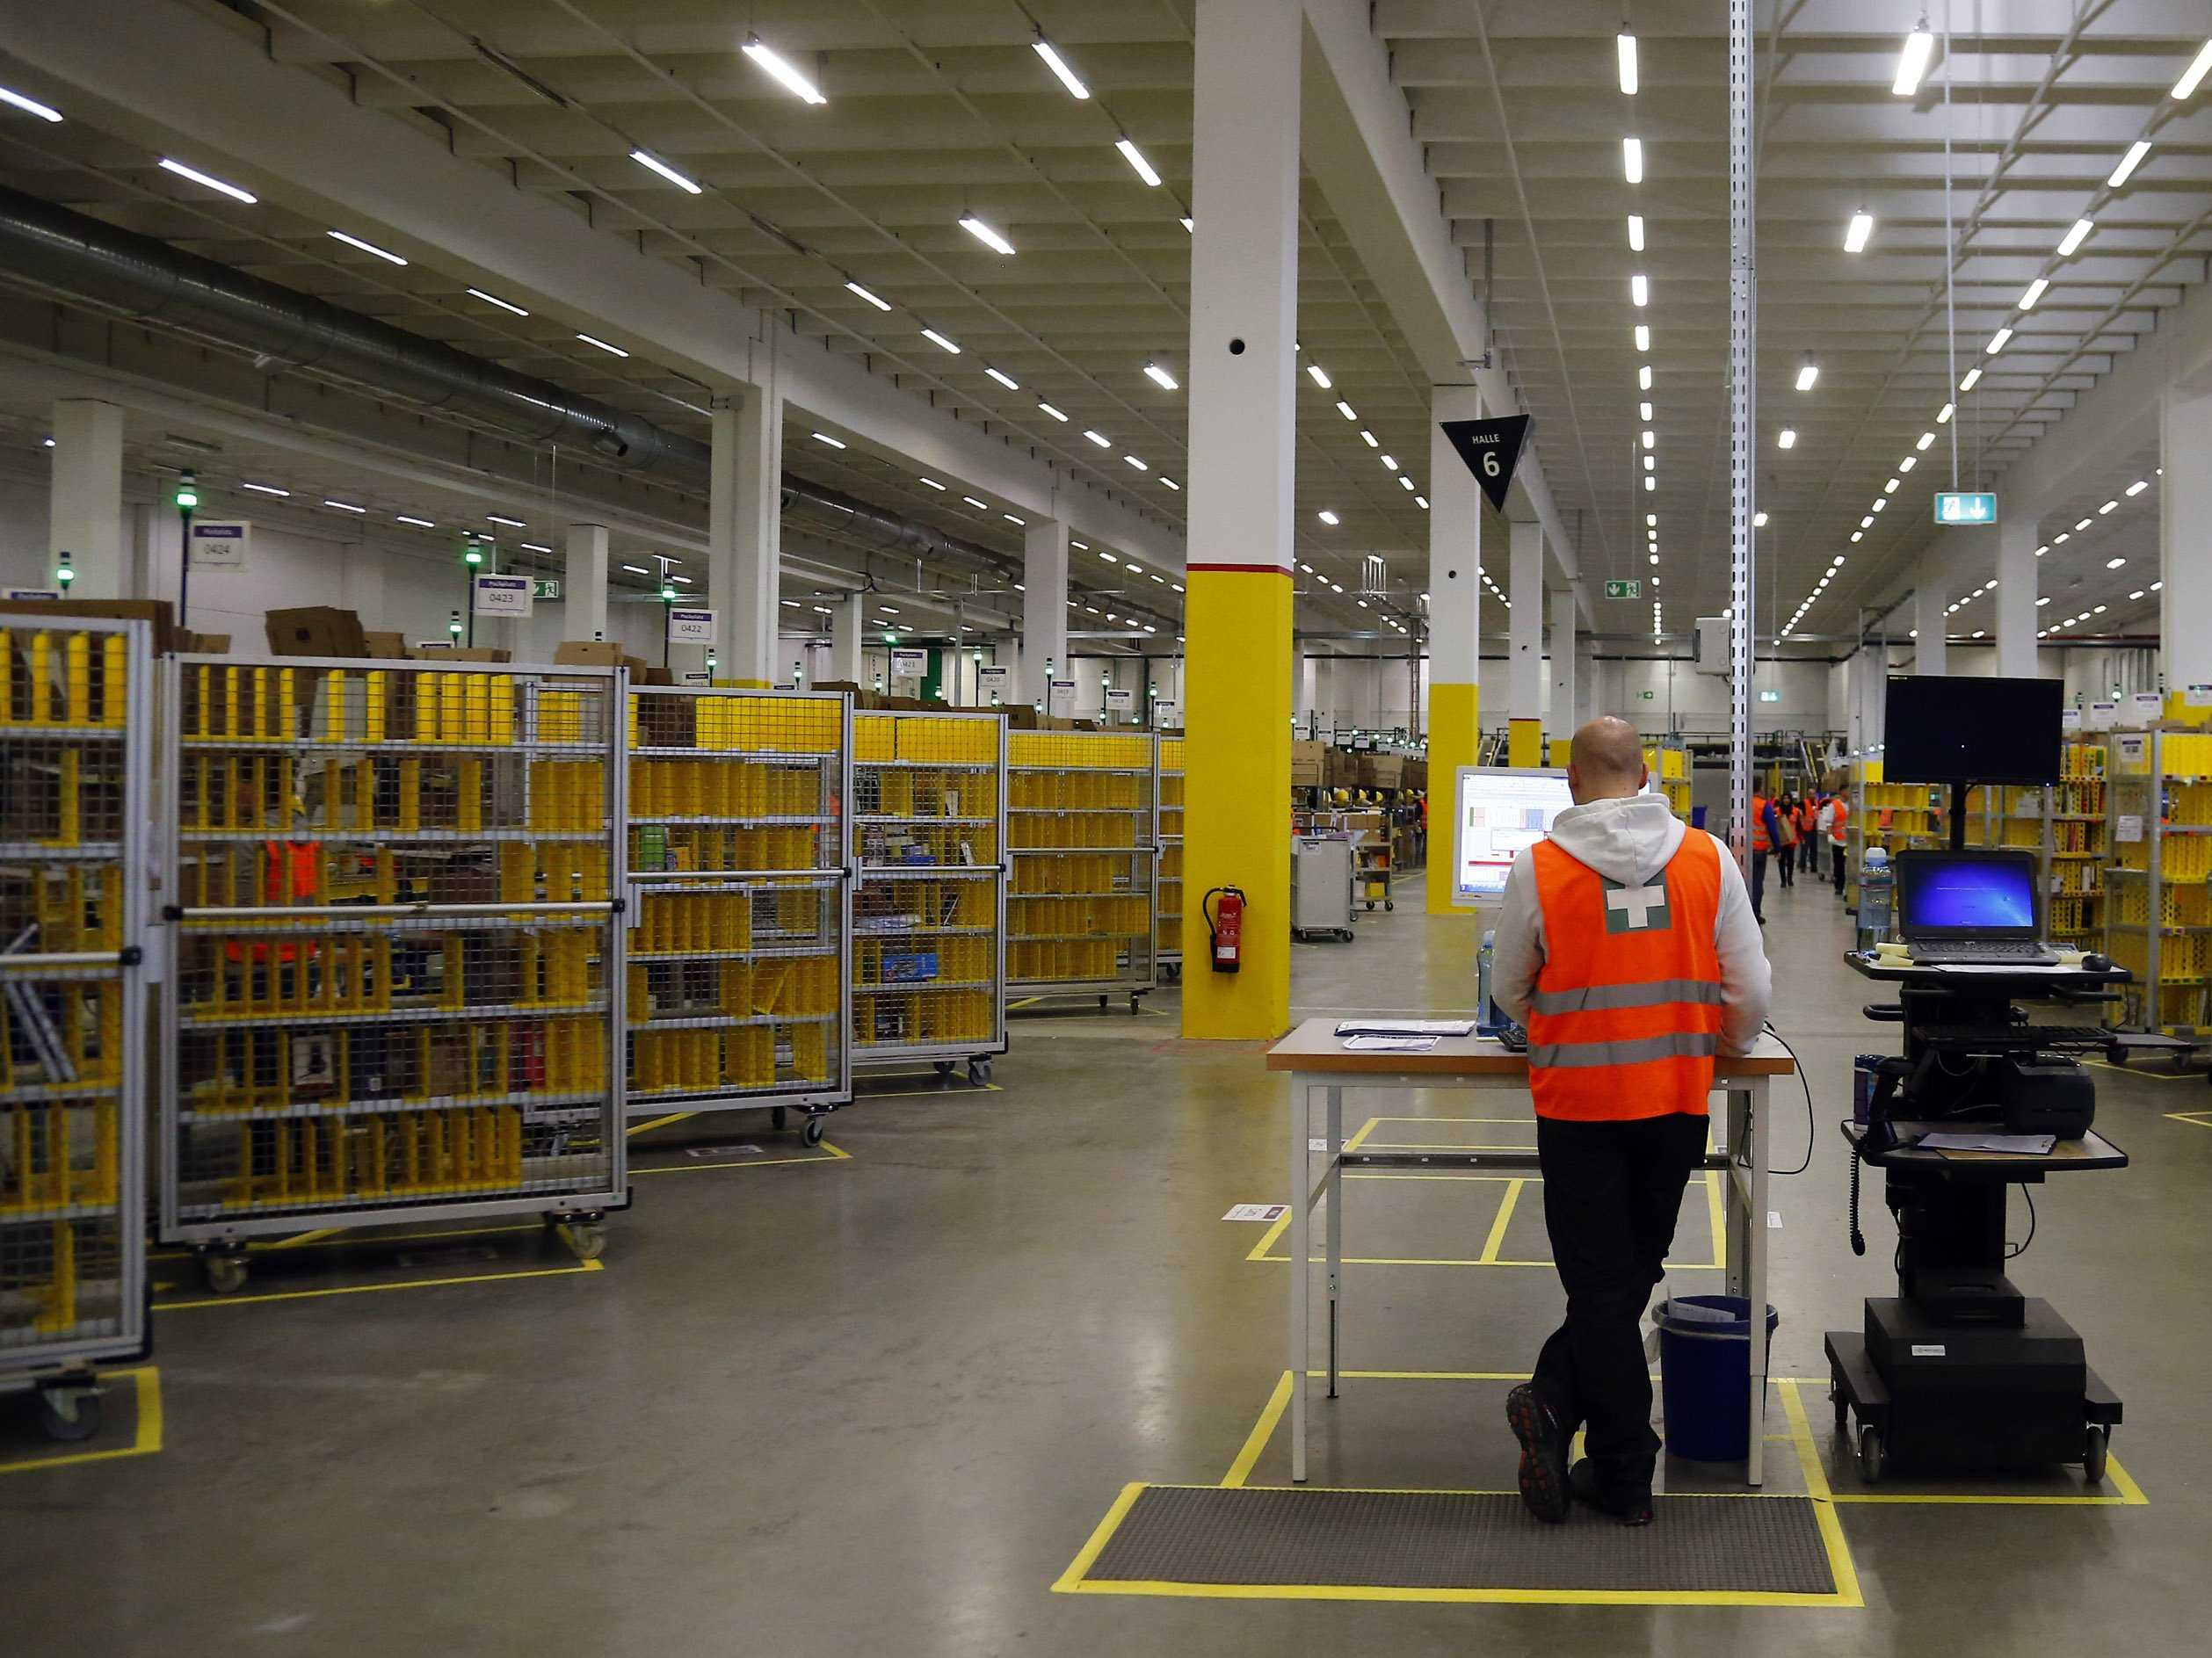 i-spent-a-week-working-at-an-amazon-warehouse-and-it-is-hard-physical-work